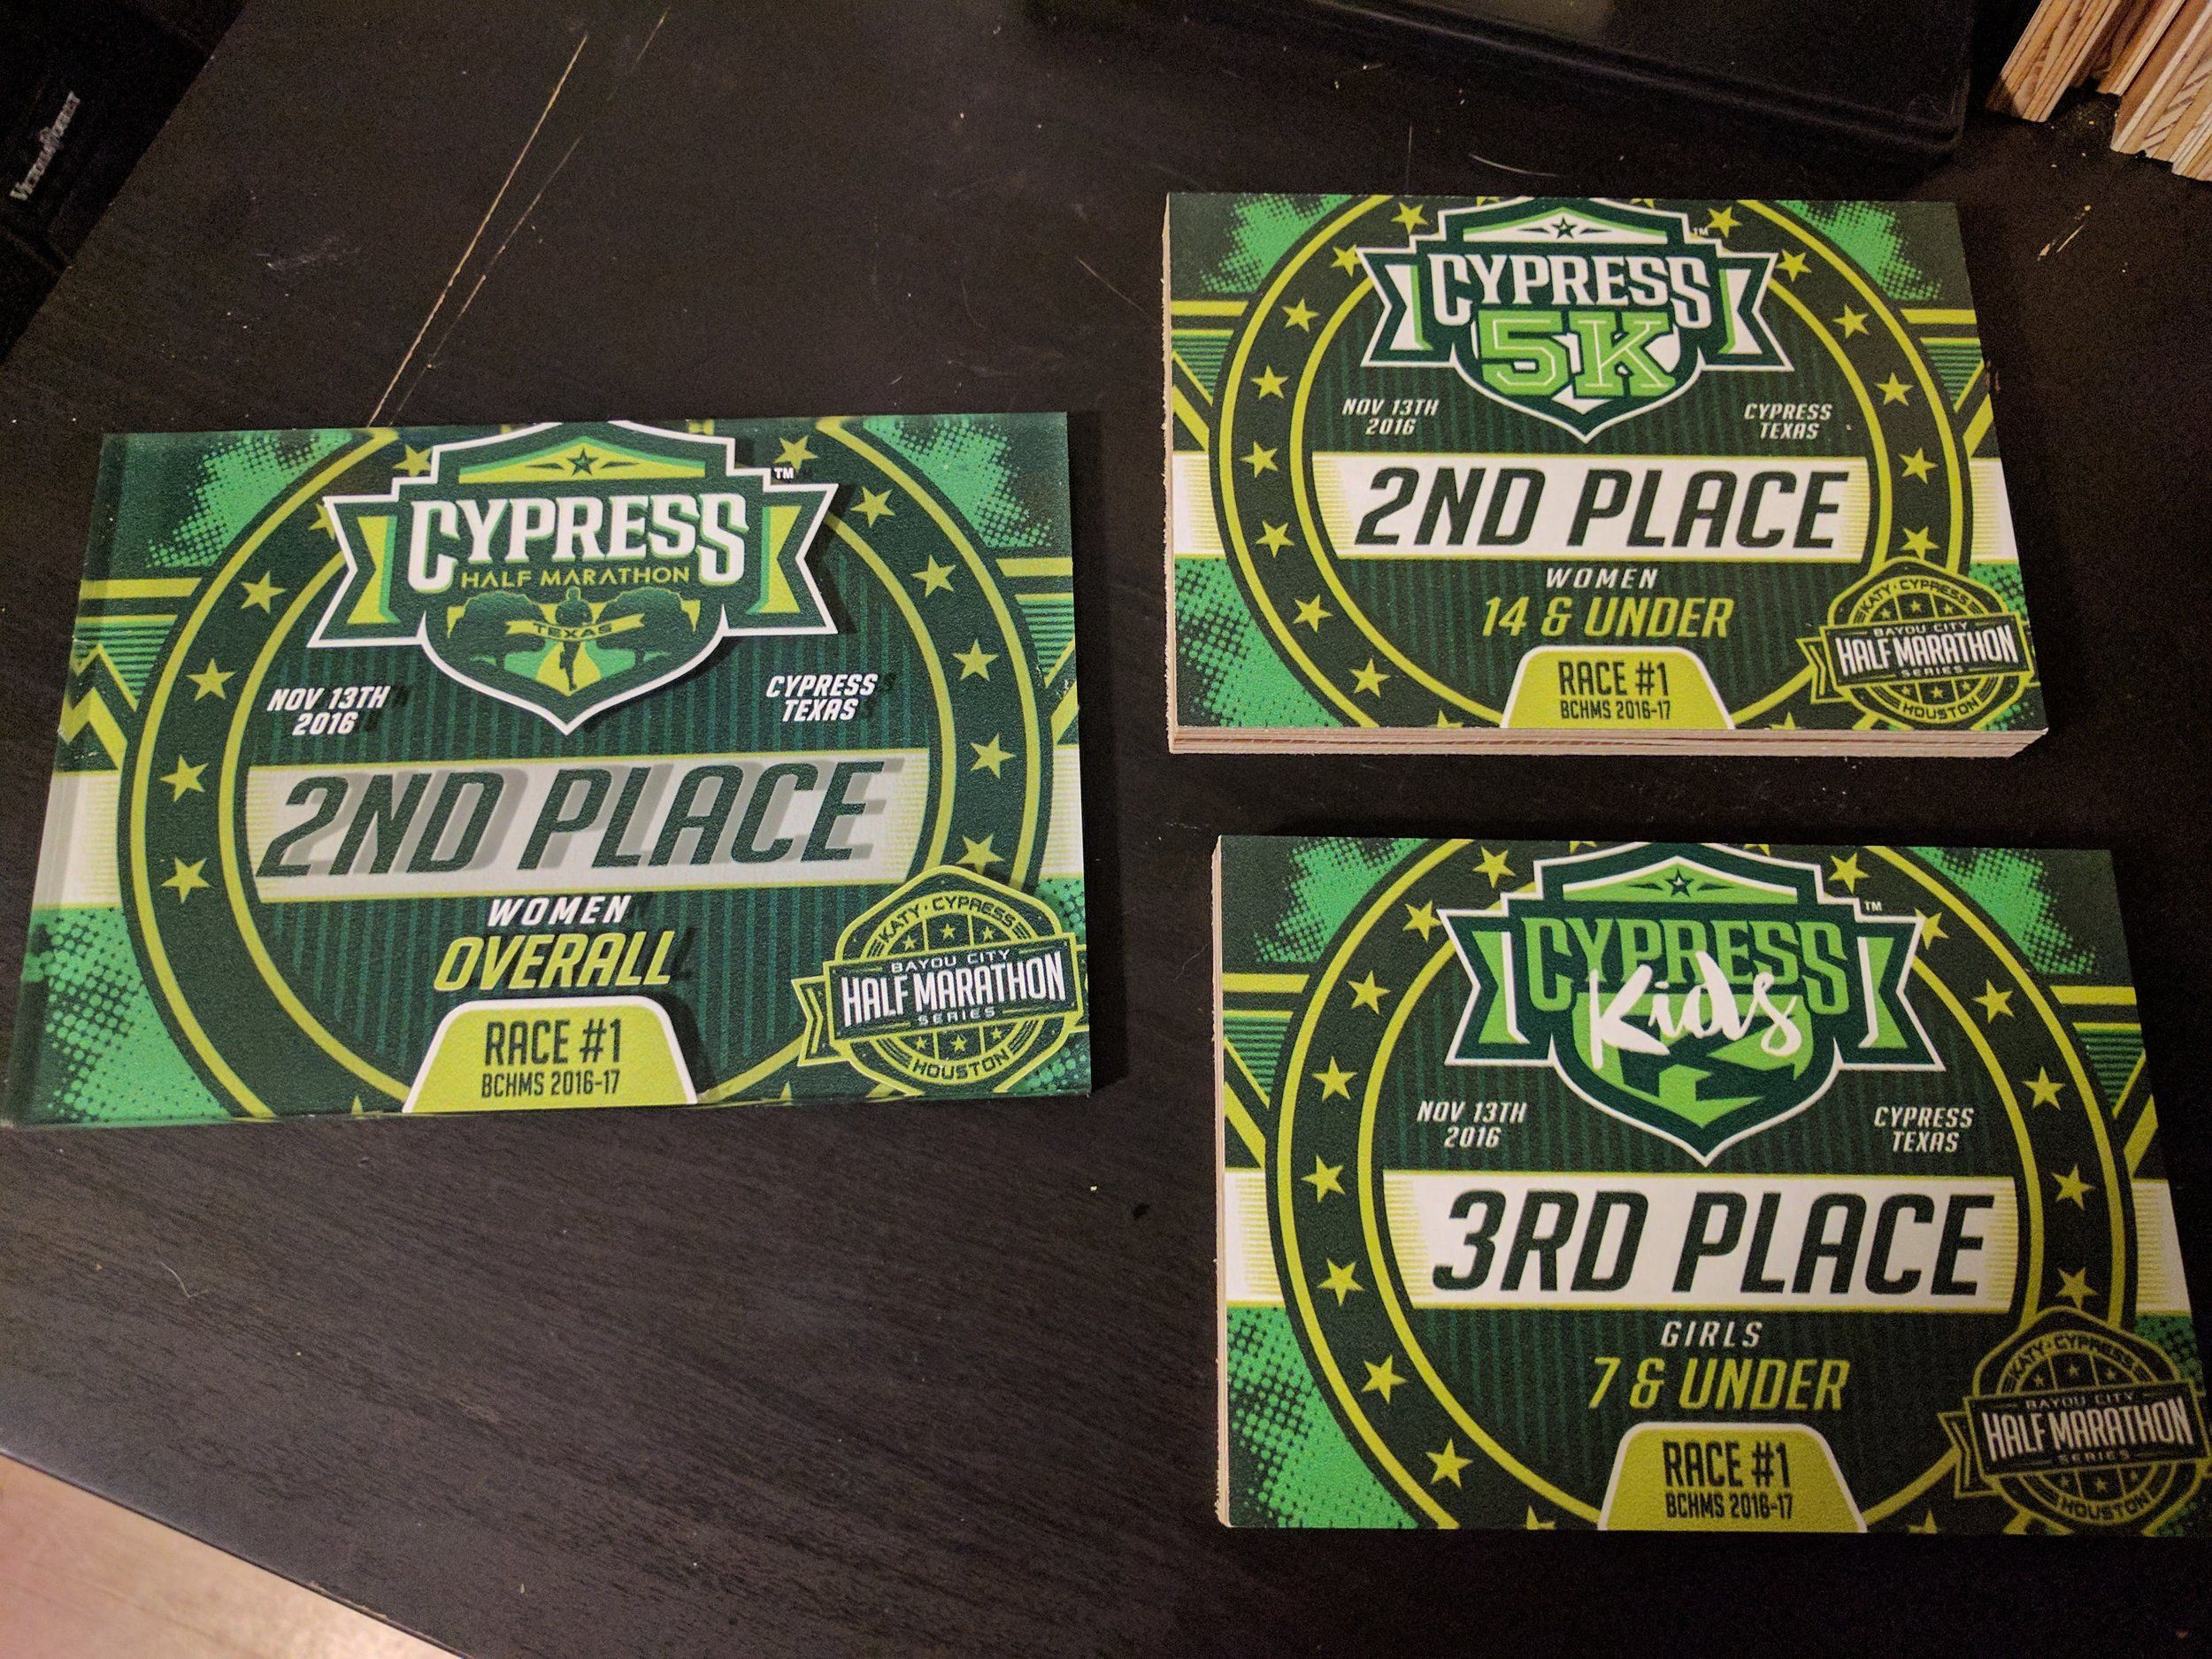 2016 Cypress Half Marathon, 5k, and kids 1k age group awards. Half Marathon awards are double-sided print on acrylic. The background is printed on the underside and the top level has the event logo, series logo, and text. The 5k and kids 1k awards are full color printed on MDO.